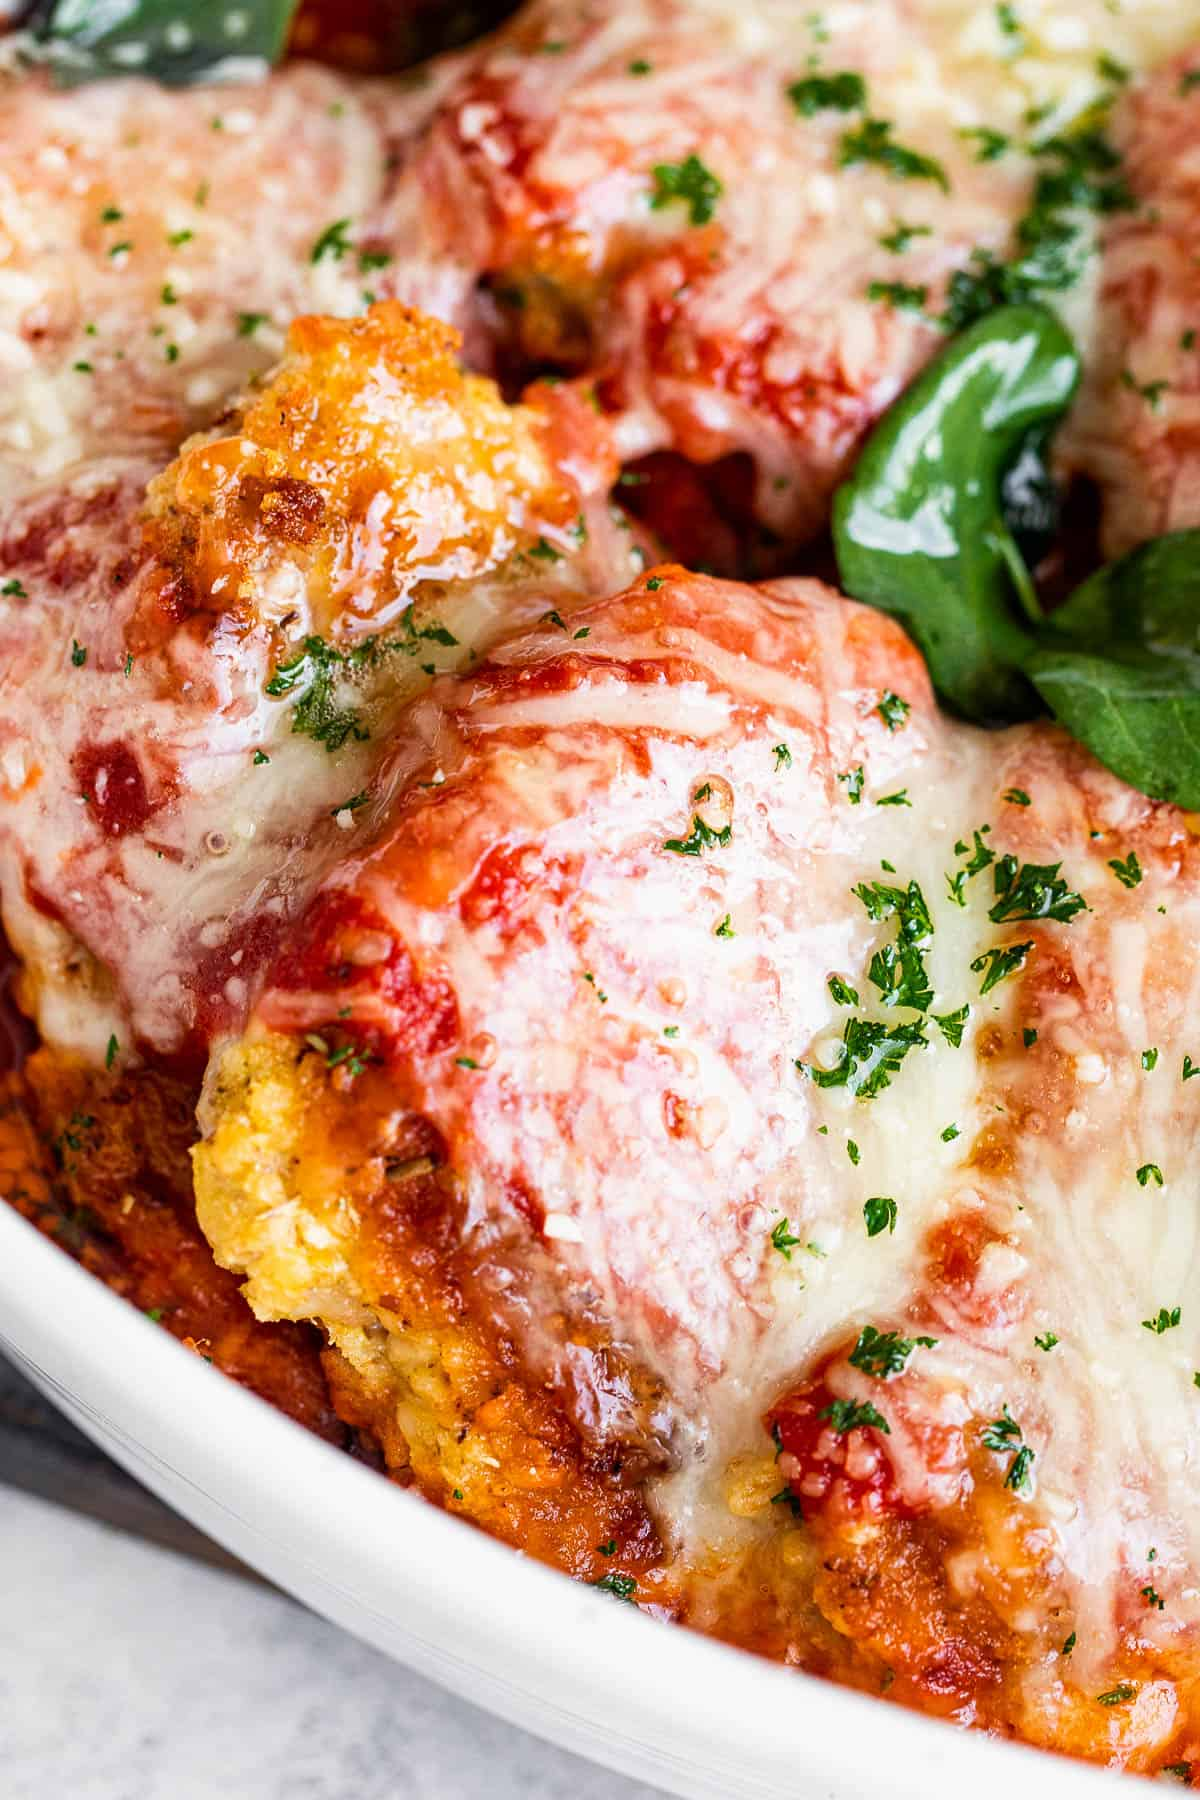 close up shot of baked pork parmigiana topped with melted cheese and basil leaves.